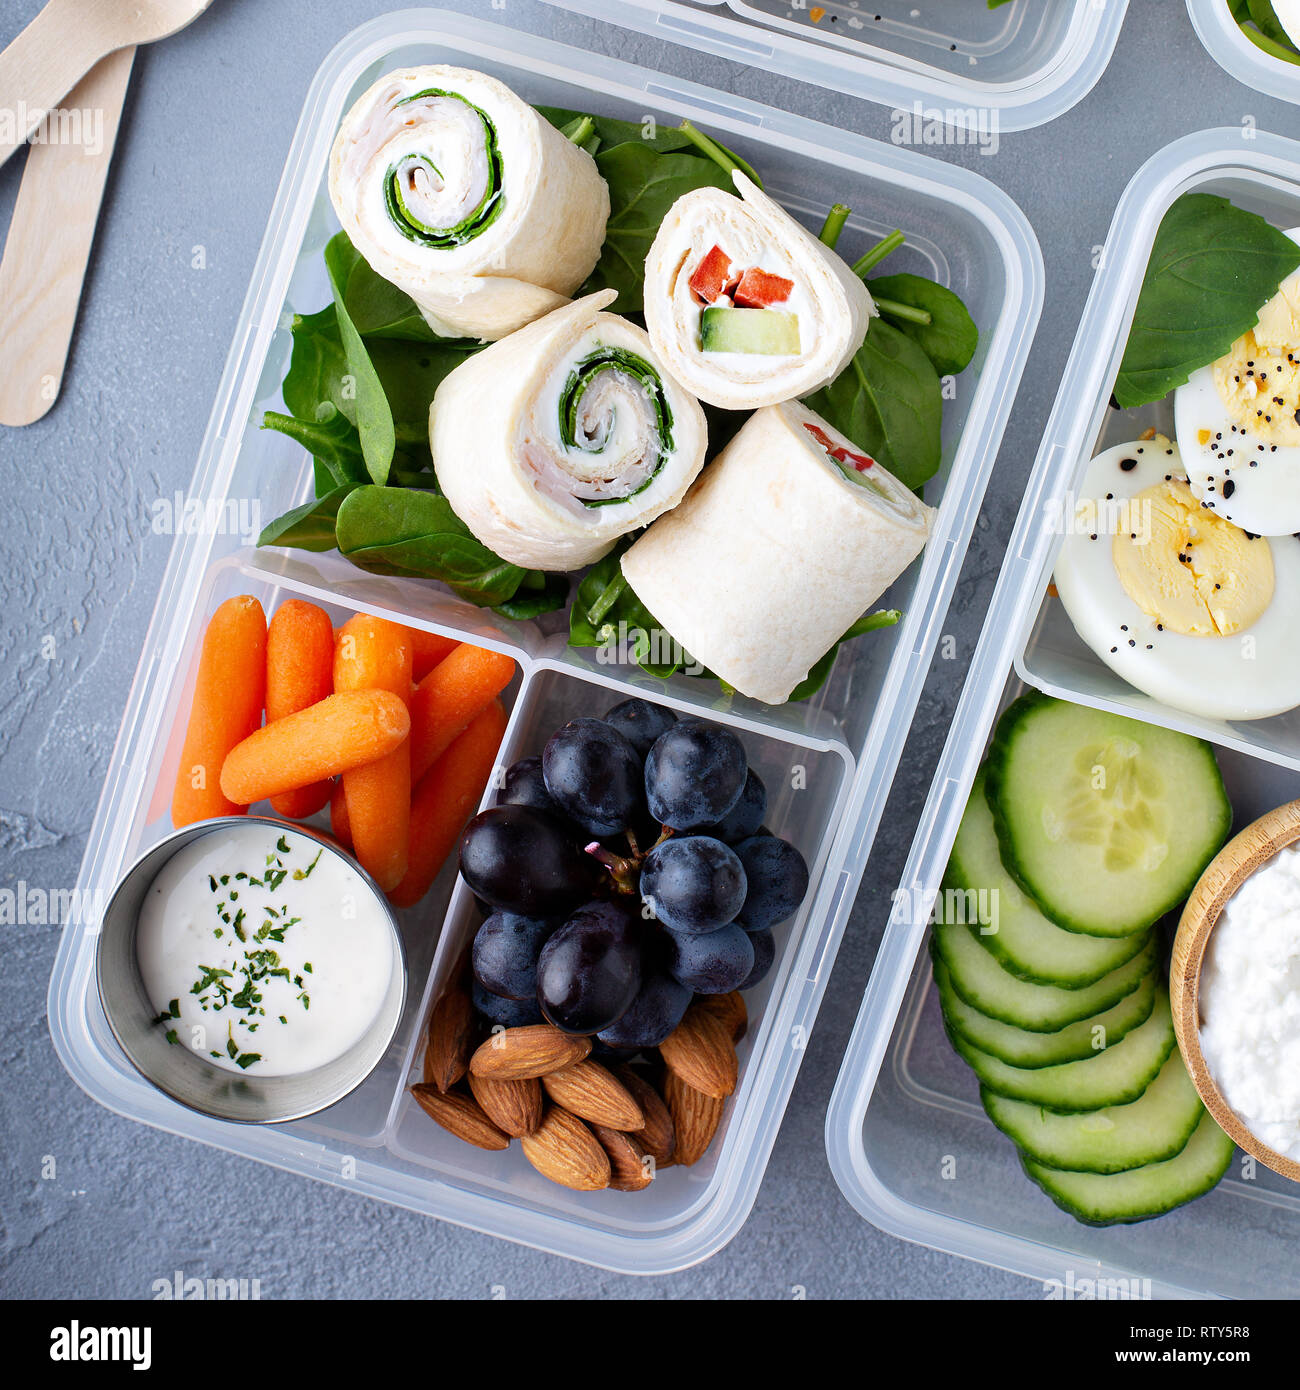 Excellent Healthy Lunch Or Snack To Go With Tortilla Wraps Eggs Download Free Architecture Designs Rallybritishbridgeorg